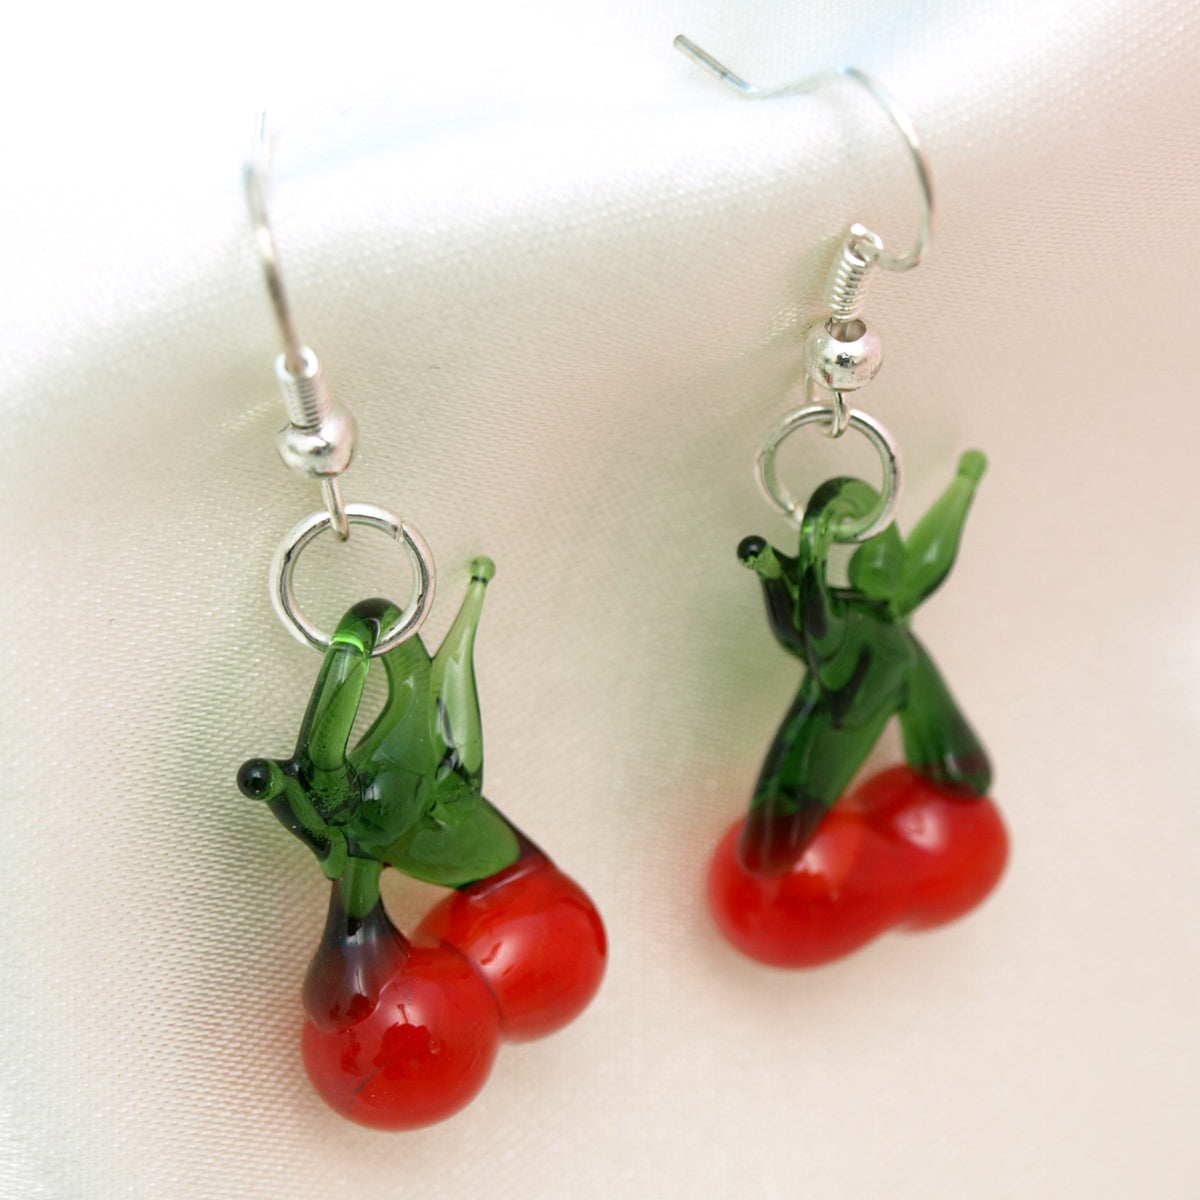 Glazed Fruit Earrings - Cherry